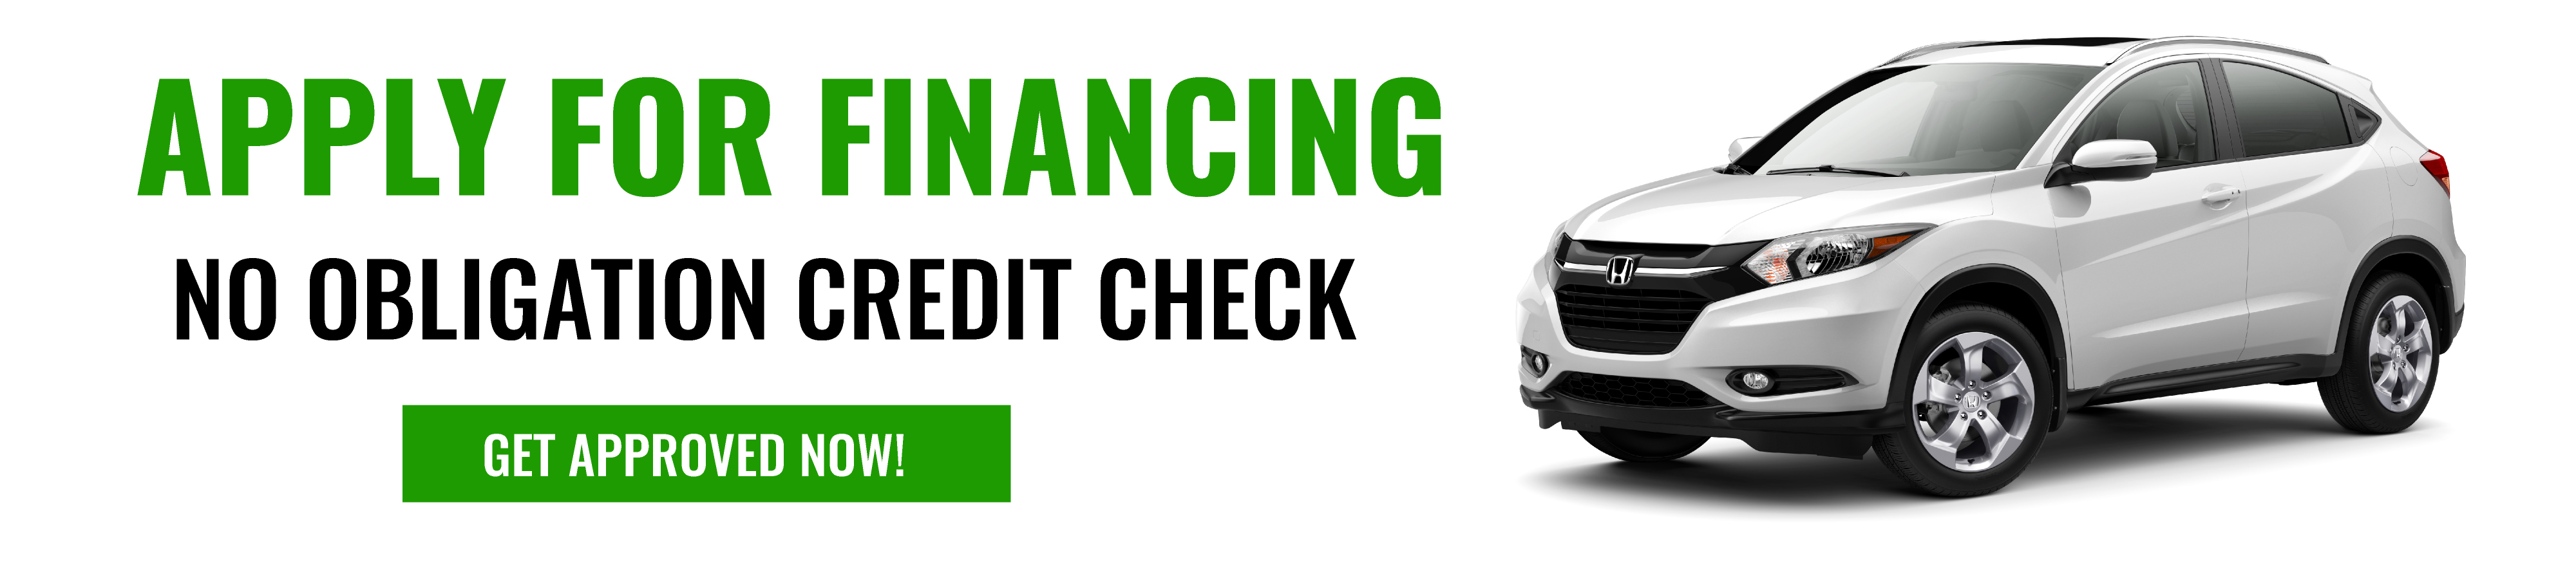 quick and easy financing and credit check